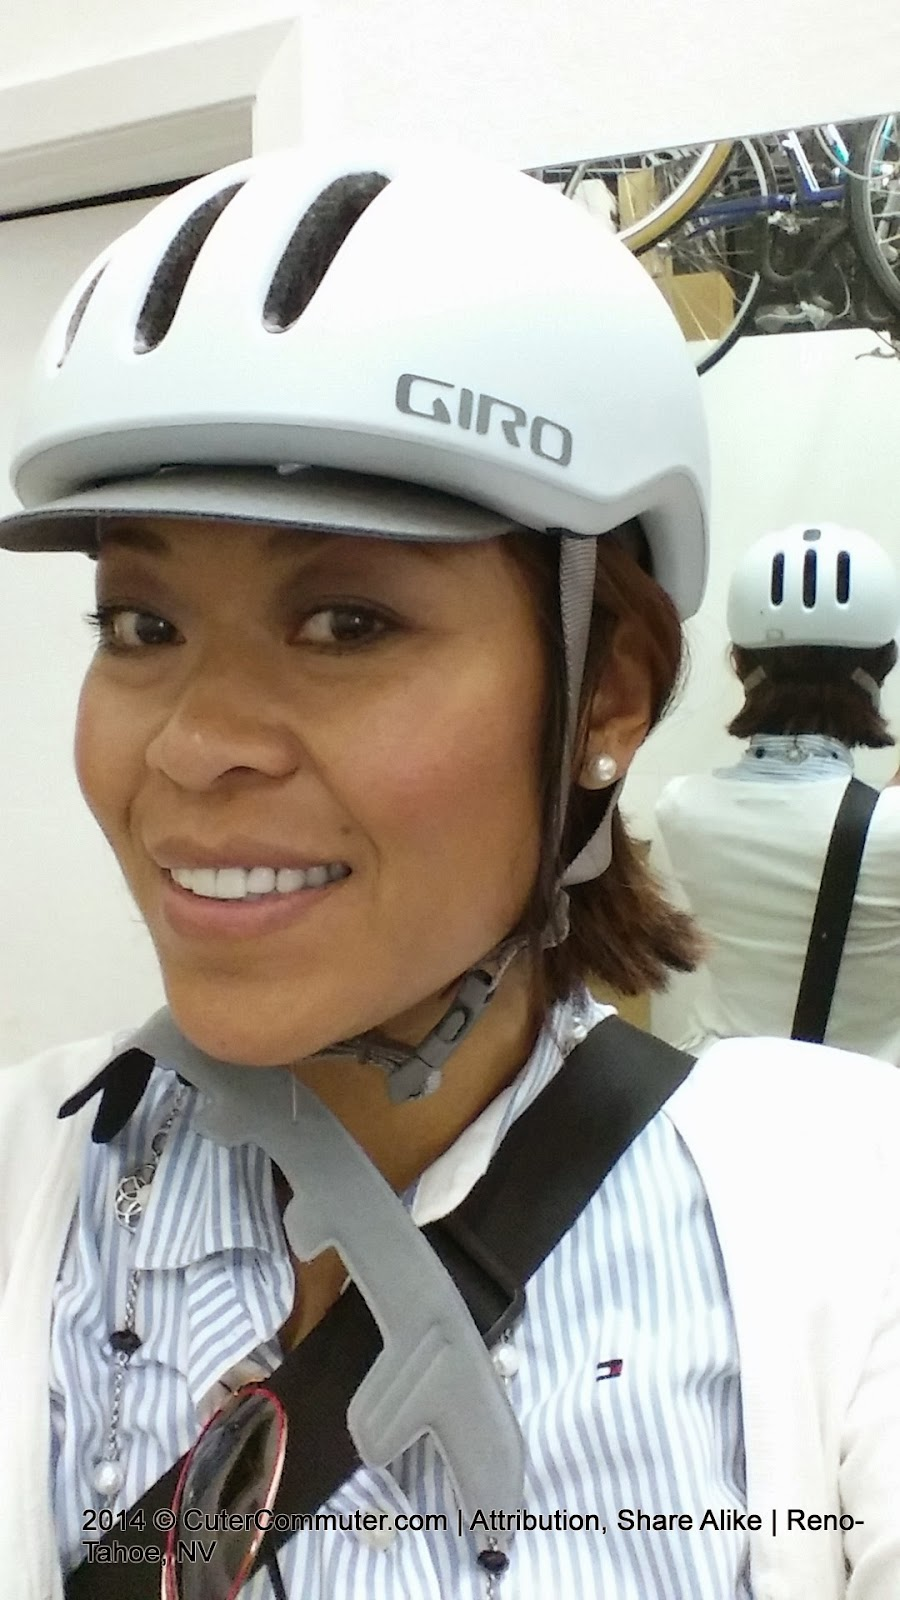 Giro Reverb Bicycle Commuter Helmet in Matte White Grid